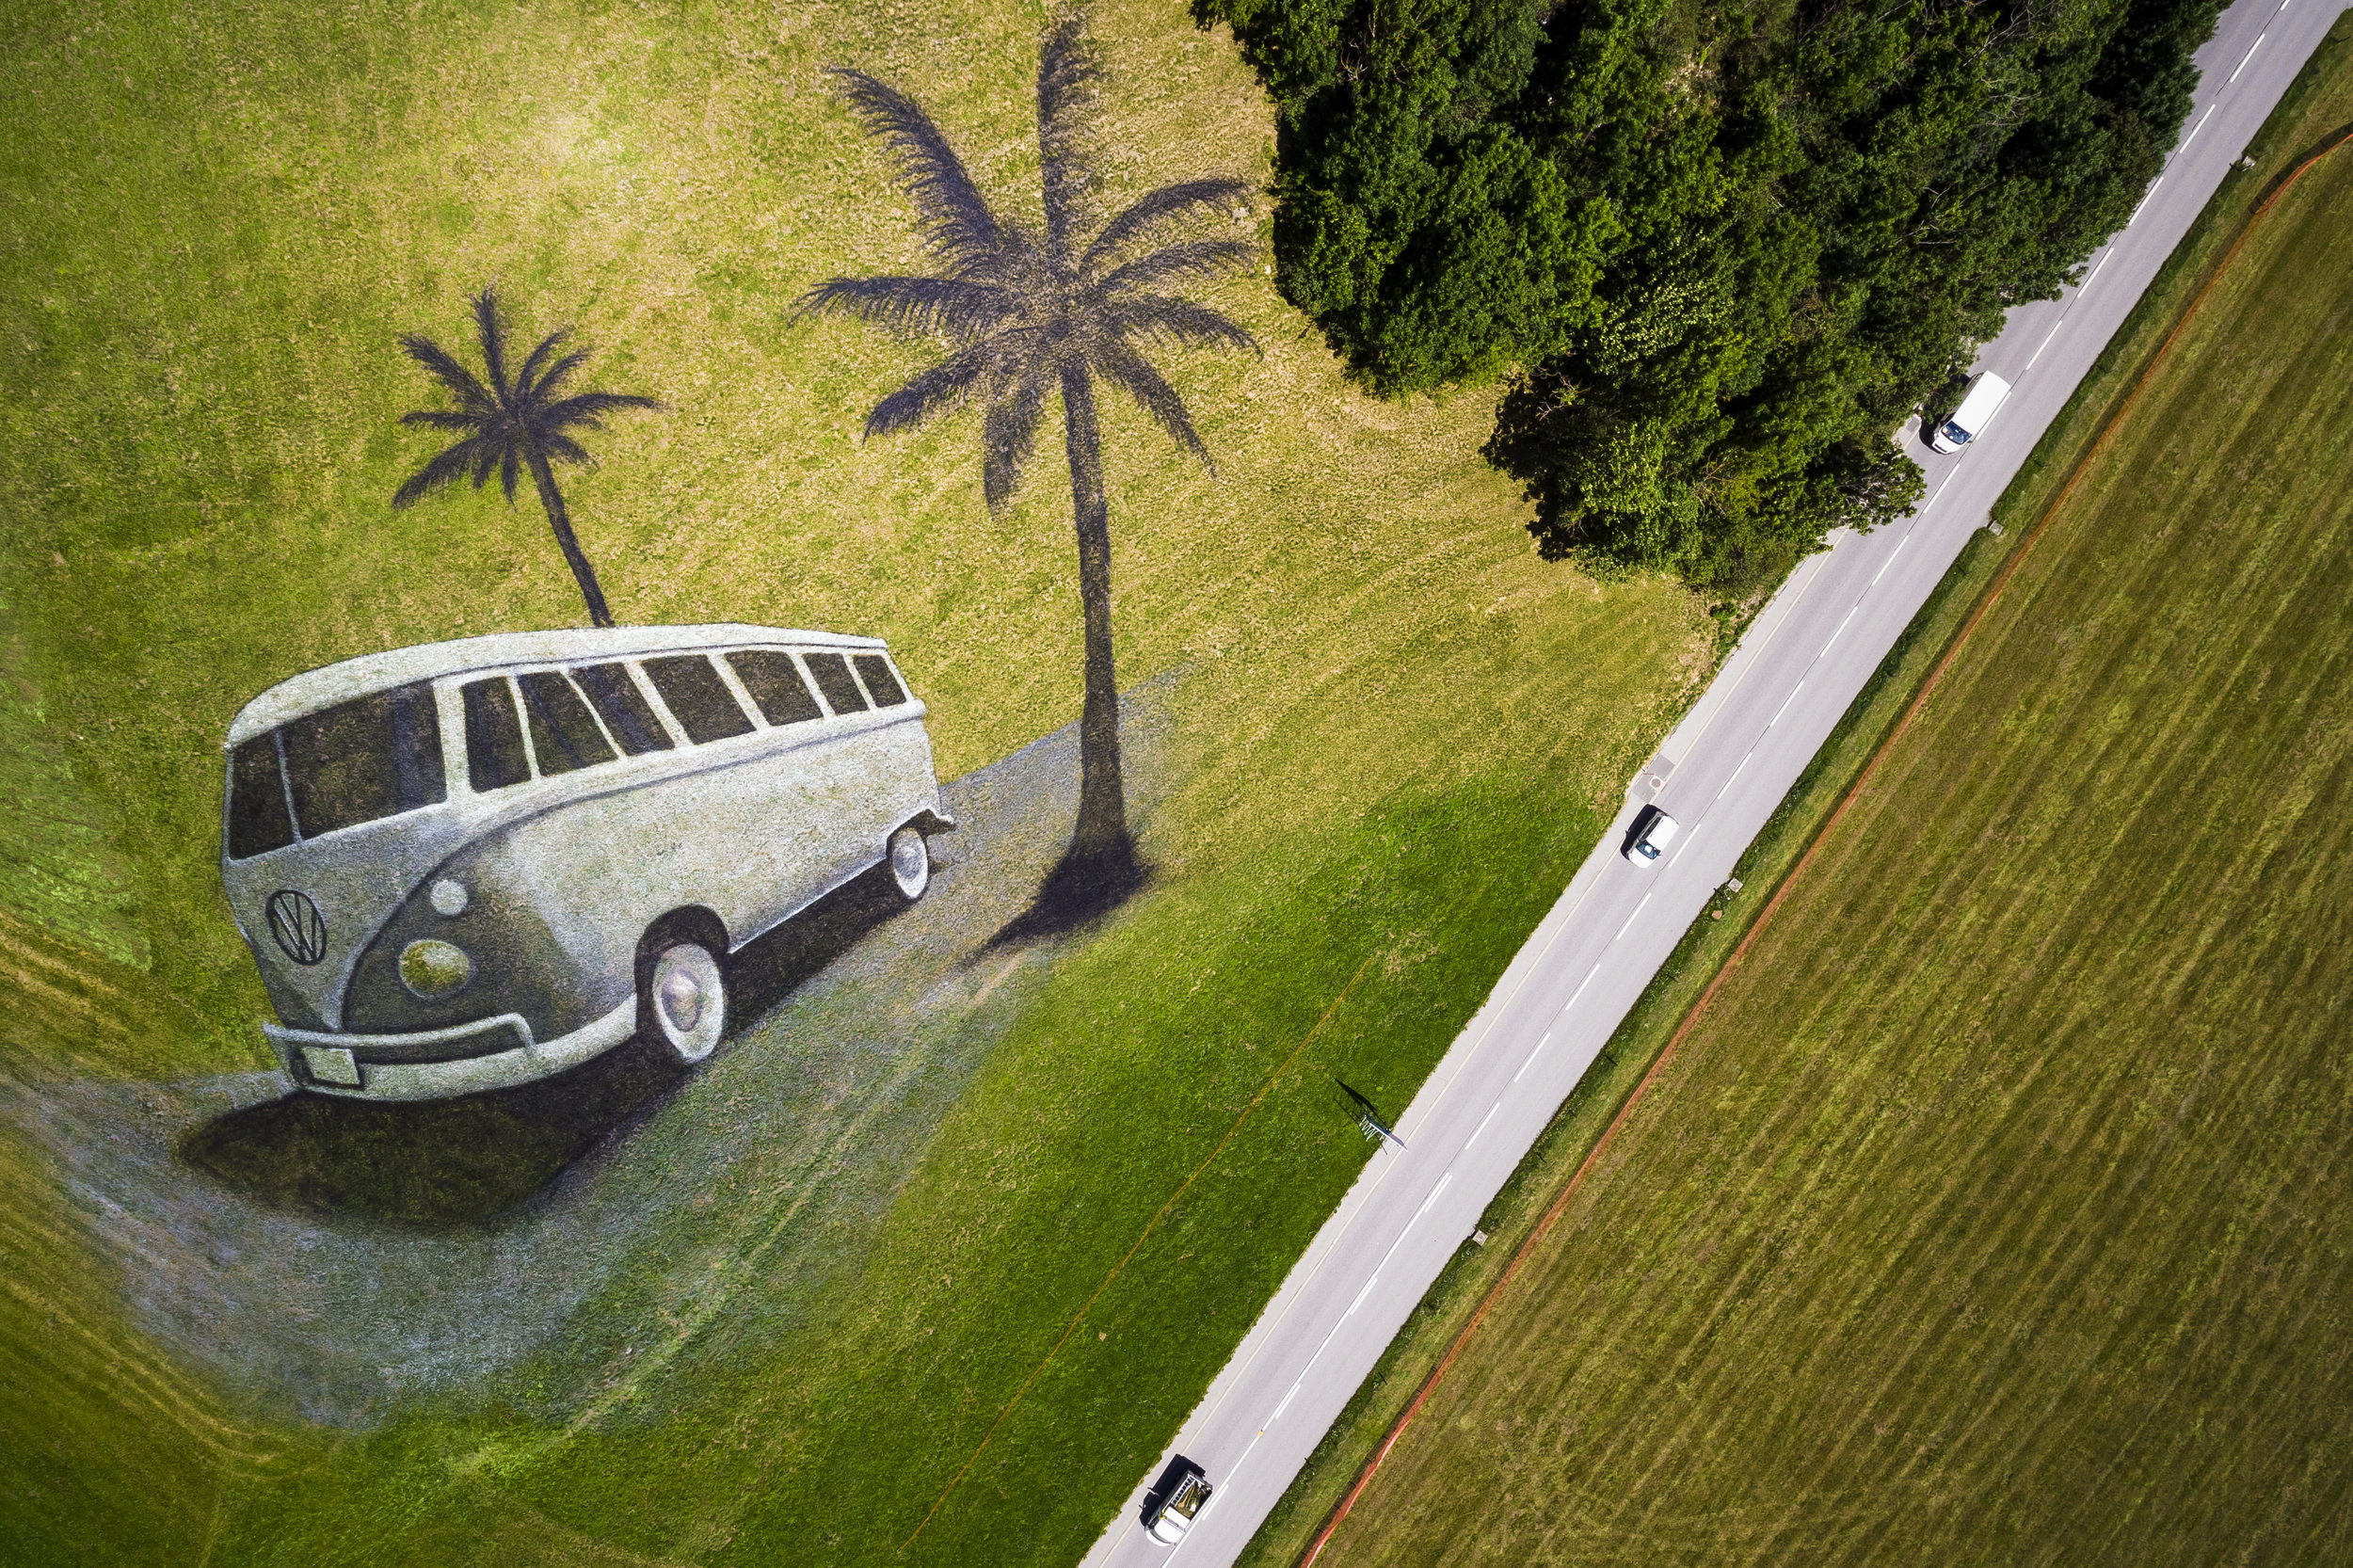 A landart painting by French artist Saype, depicting a Volkswagen (VW) bus, is pictured on a hill in Chateau d'Oex, Switzerland, Wednesday August 23, 2017. The artwork covering approximately 4200 square meters was produced with over 400 liters of biodegradable paint made from natural pigments, water and a milk protein and is part of the upcoming 20th international VW festival. (KEYSTONE/Valentin Flauraud)